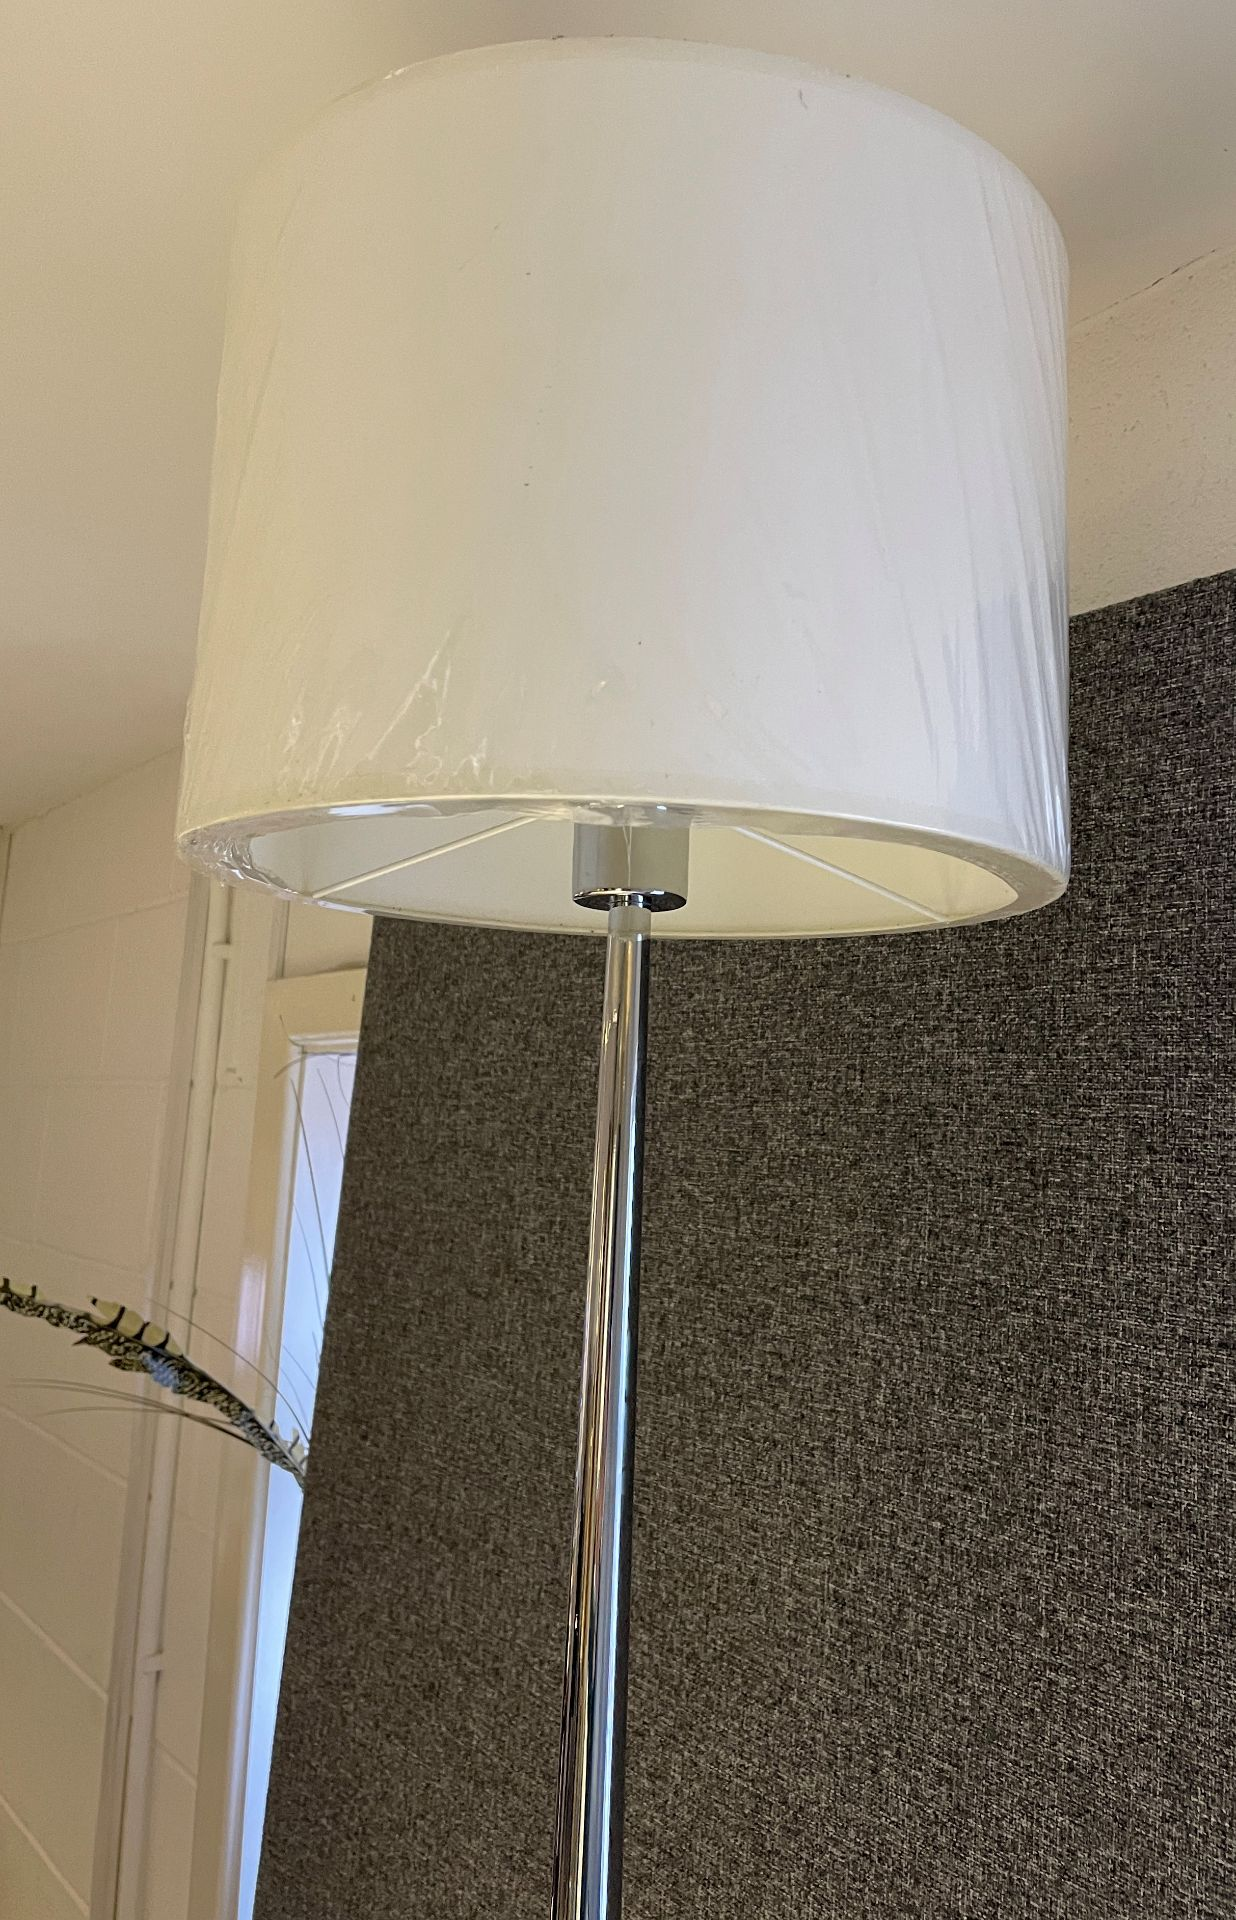 1 x Chelsom Polished Chrome Stem Floor Lamp height 155cm with Cream 31cm round shade - Ref: CHL198 - Image 5 of 10